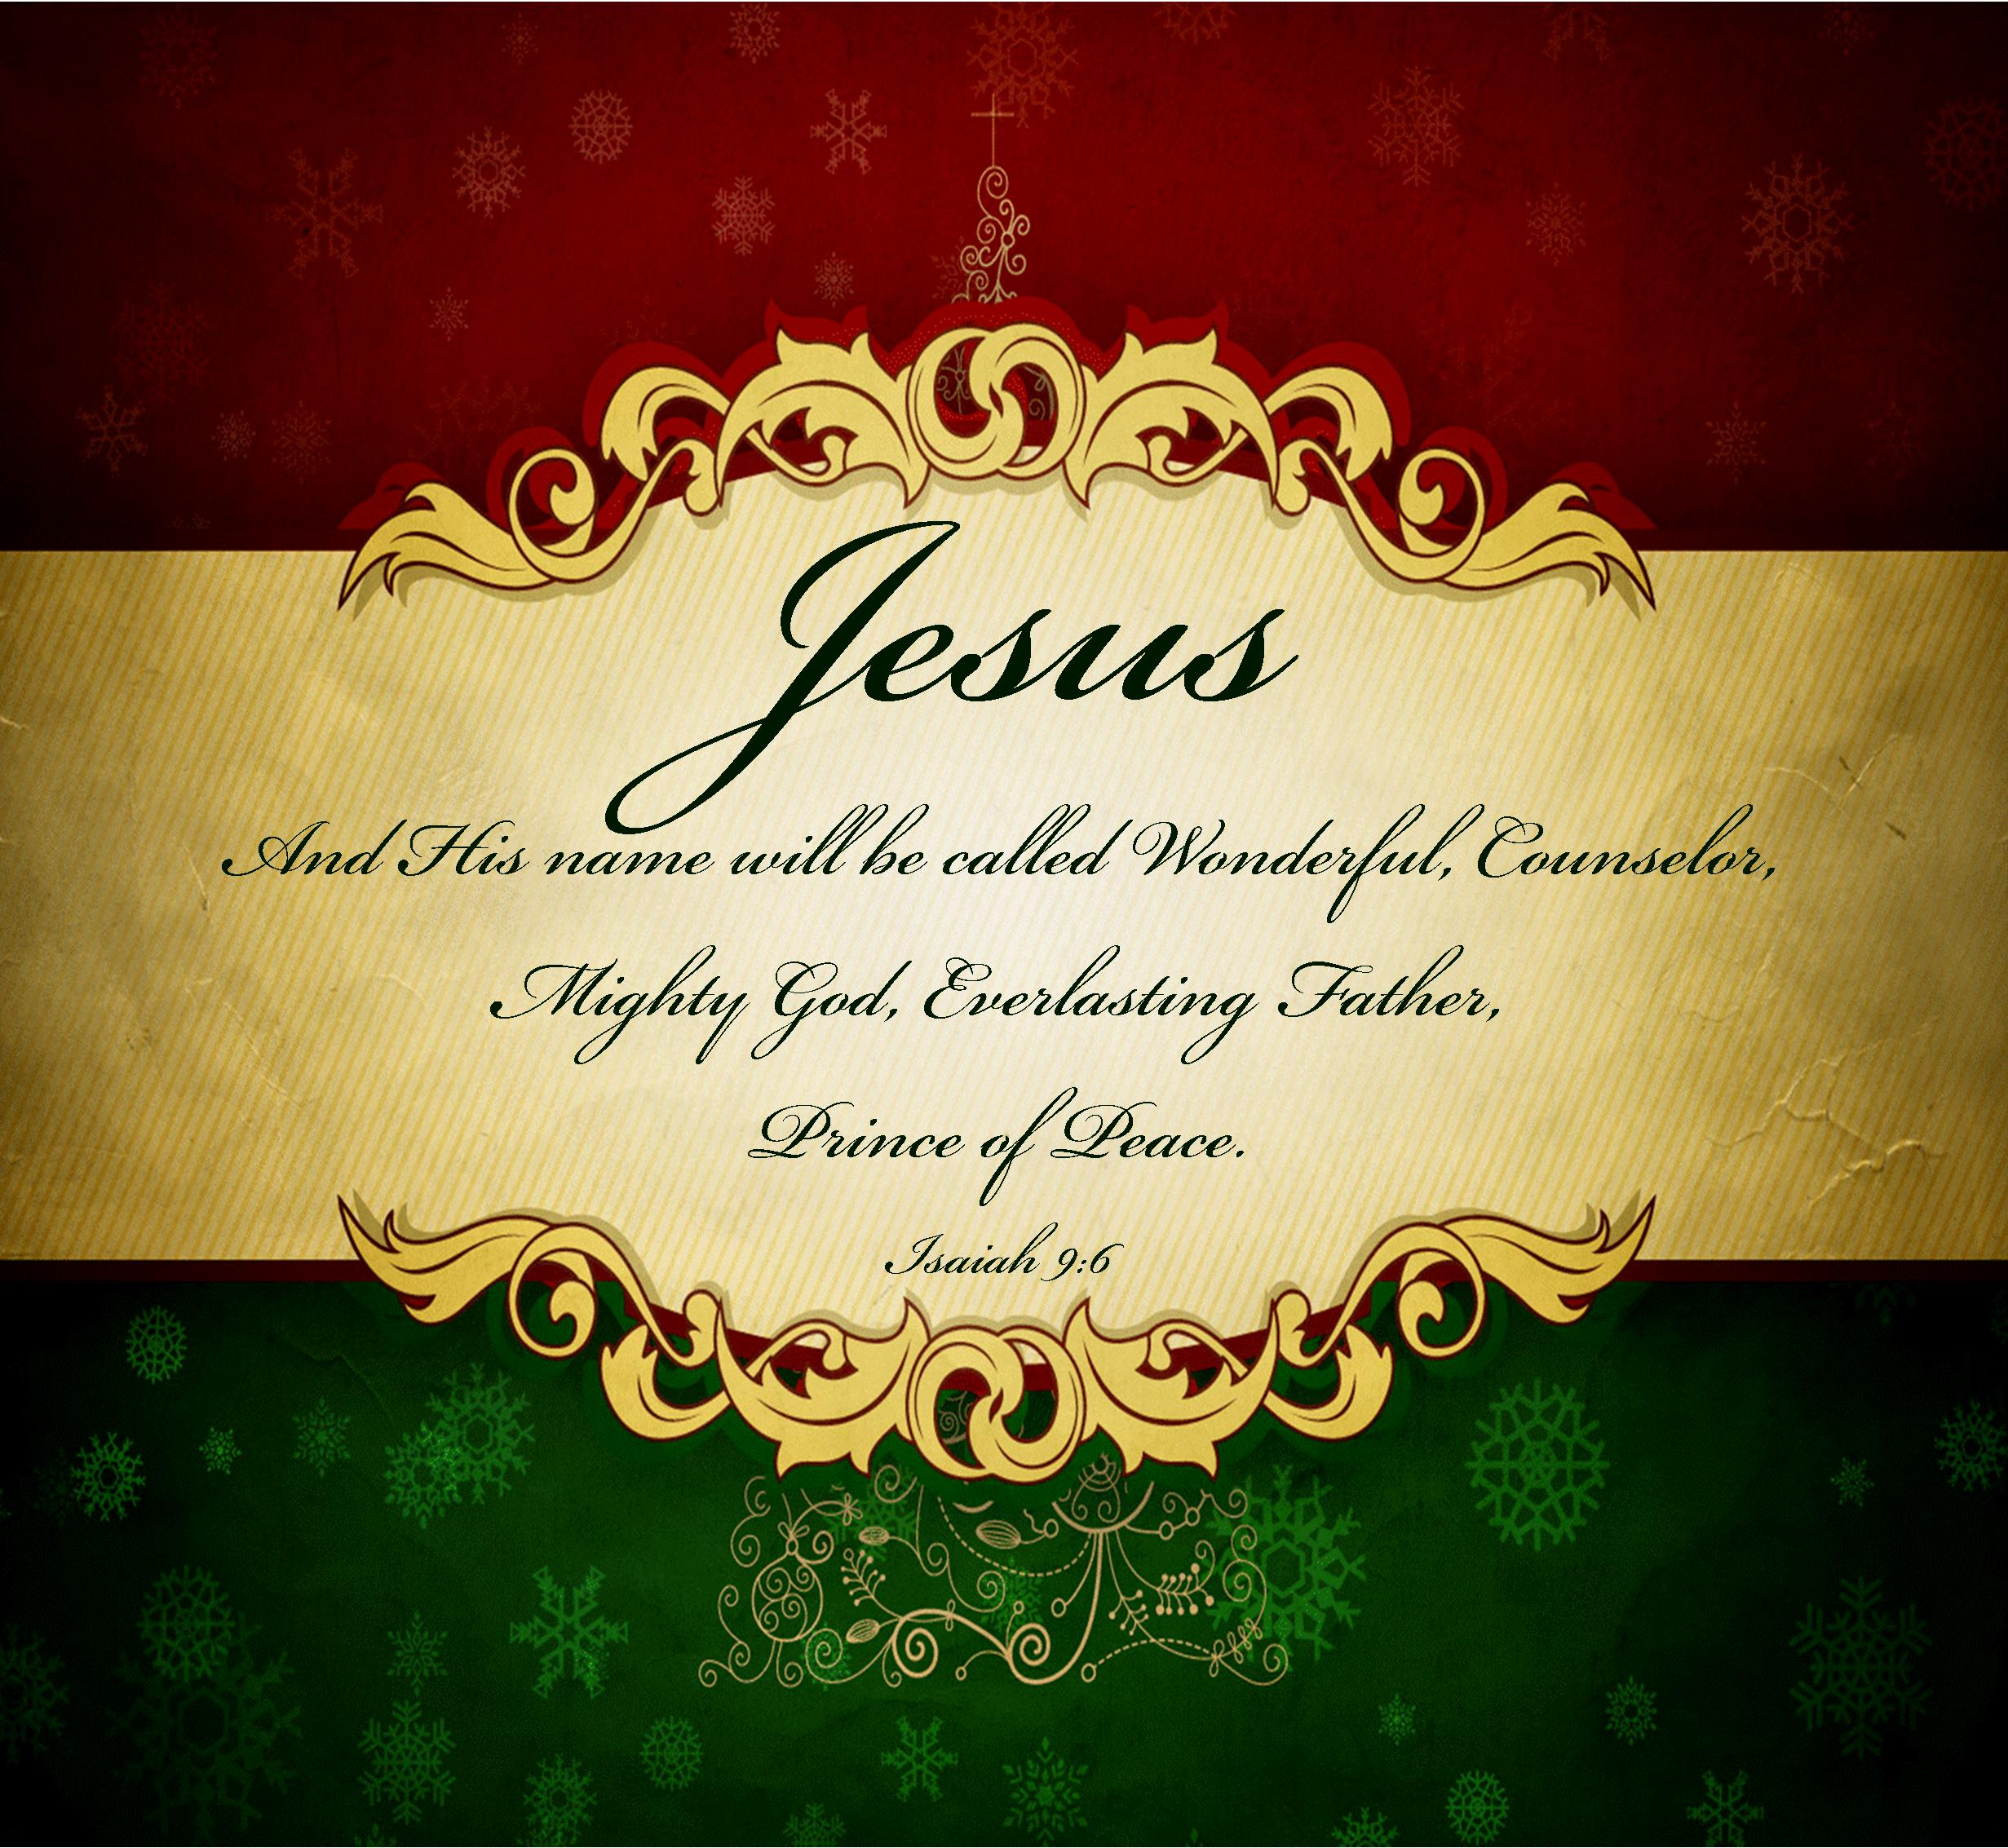 Prince of Peace - 40 Days of Holiday Encouragement - Joanne Kraft